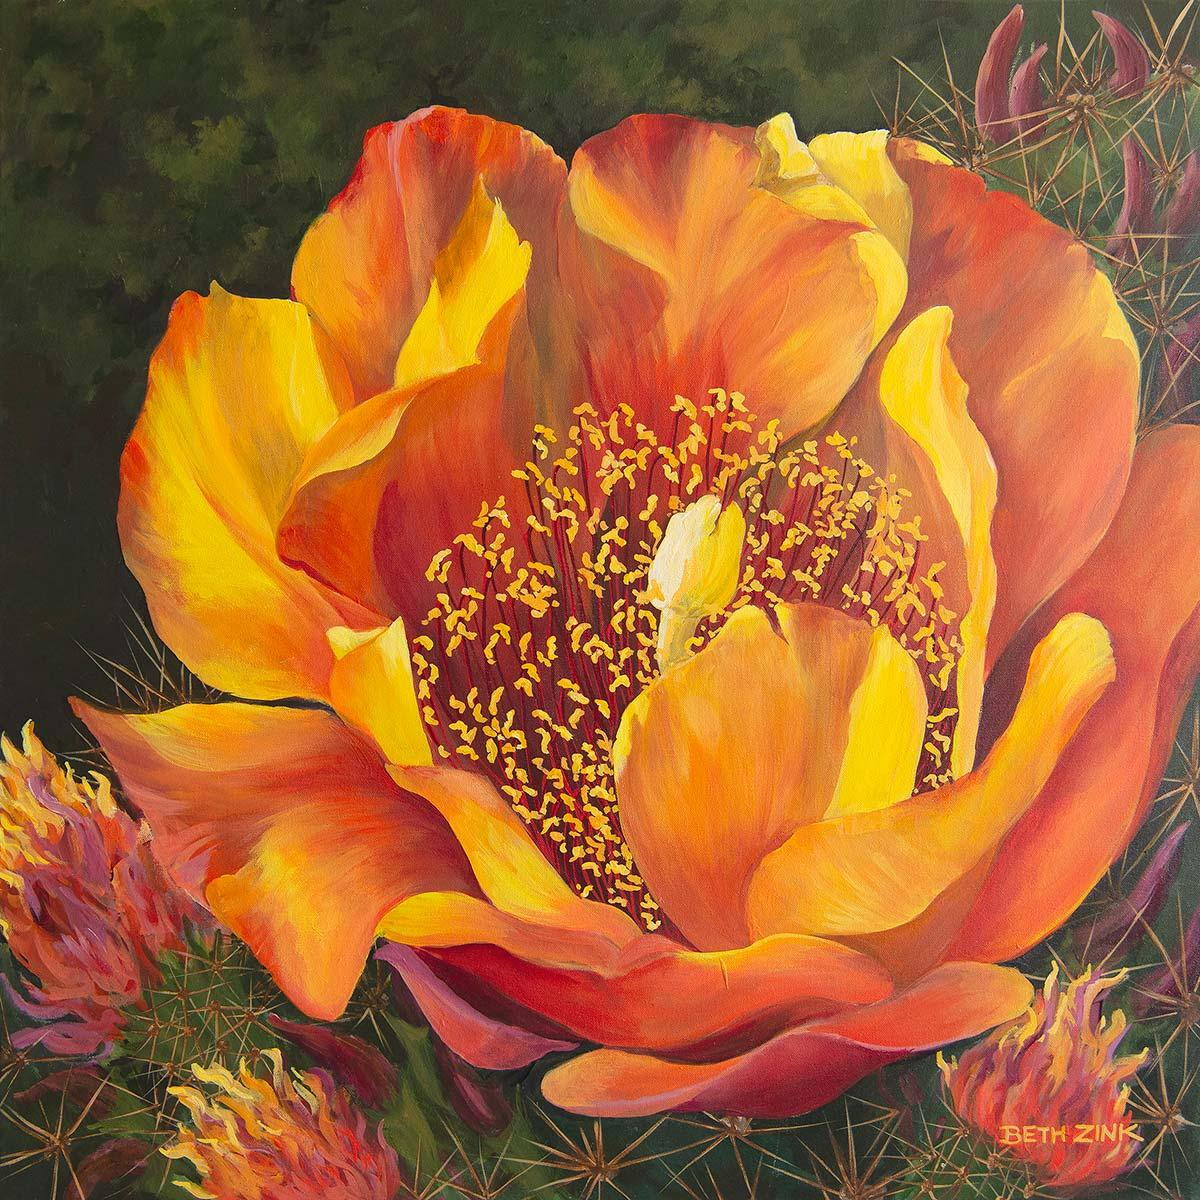 beth zink painting yellow and orange flower